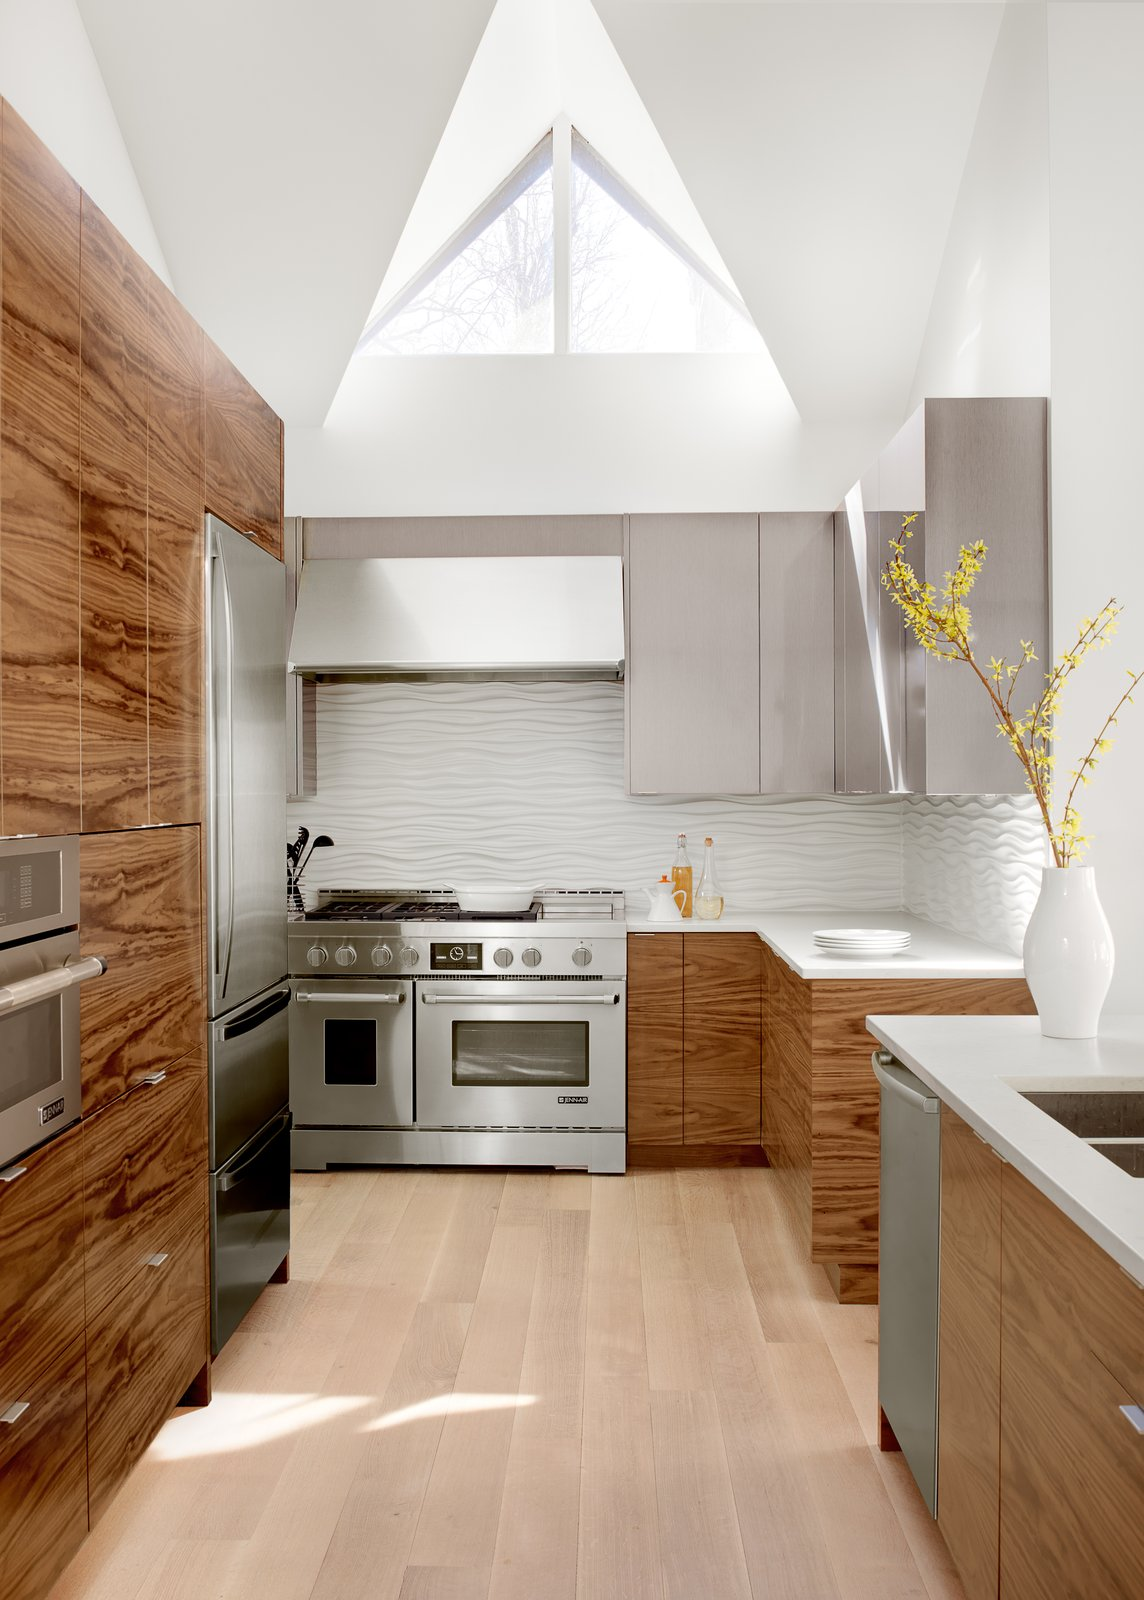 Kitchen  Modern House in Creve Couer by Mitchell Wall Architecture & Design